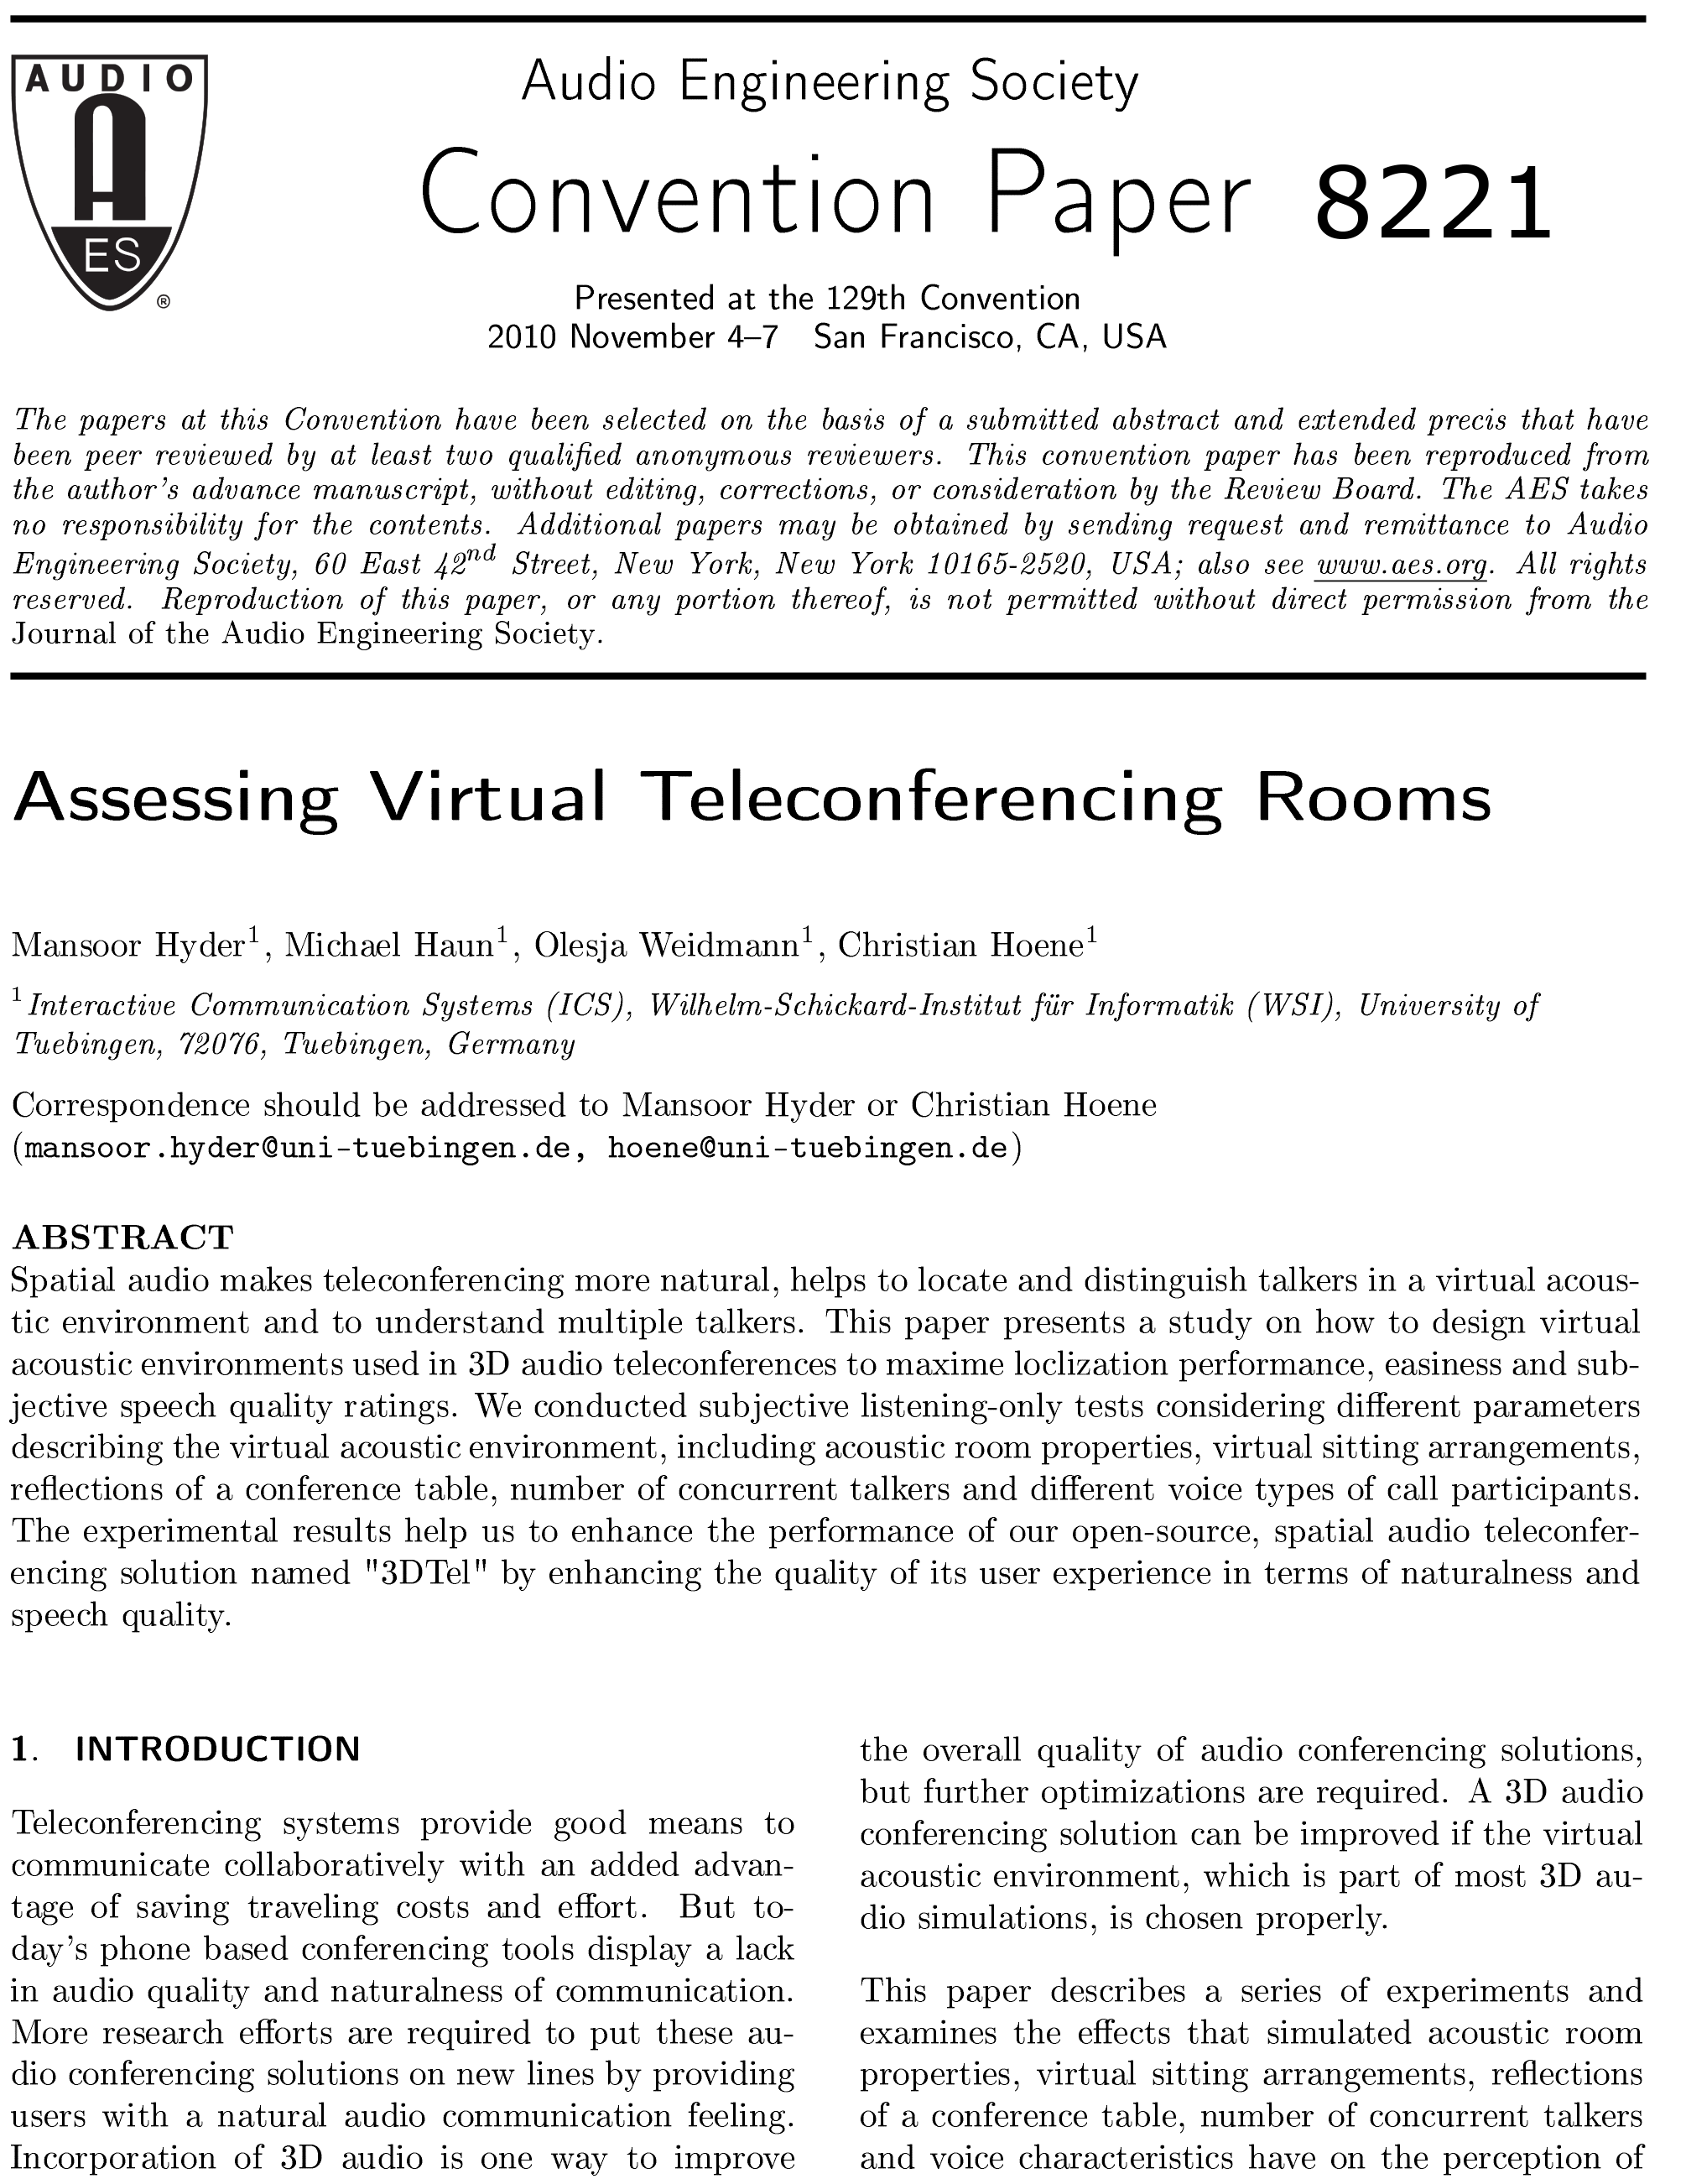 essay on teleconferencing Searching for synchronous conferencing essays find free synchronous conferencing essays, term papers, research papers, book reports, essay topics, college essays.